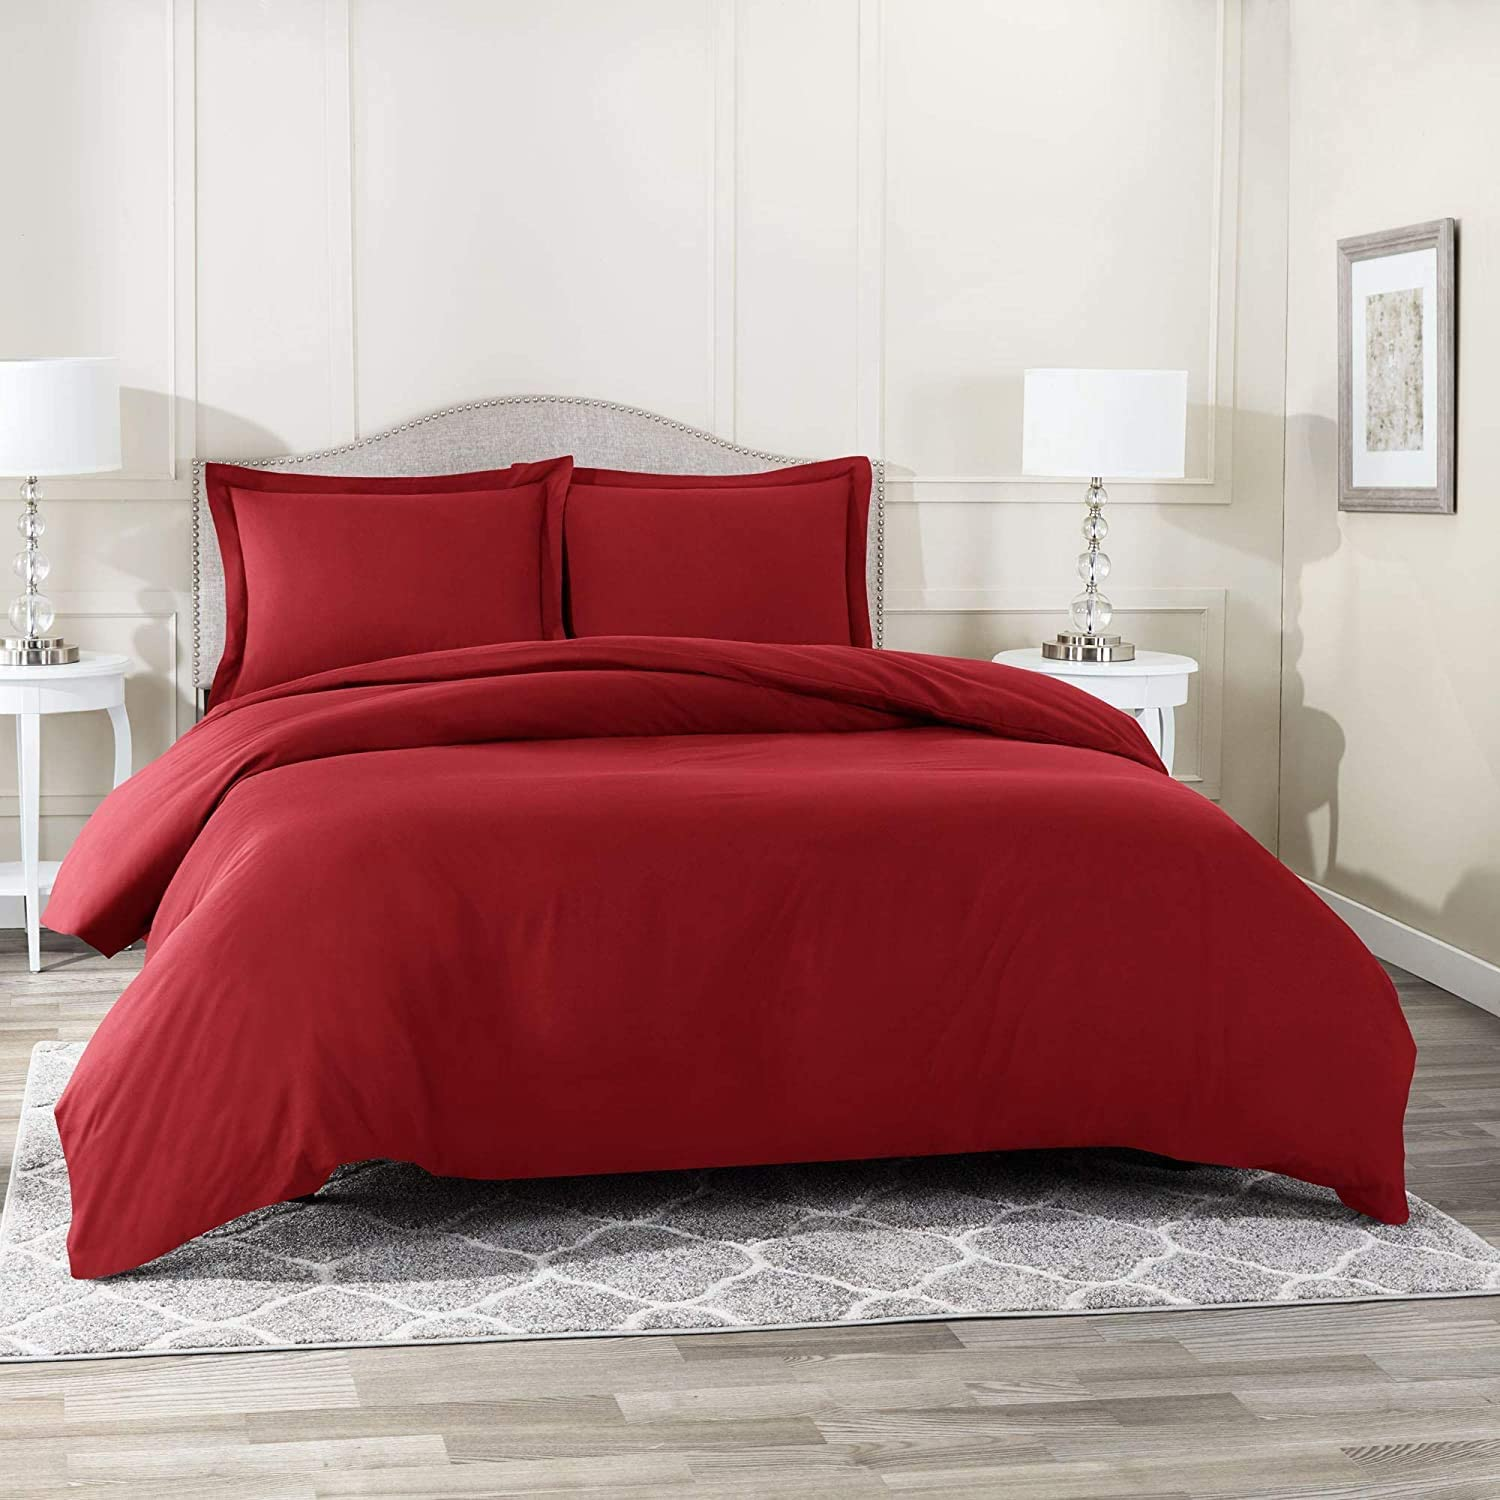 Elf Linen 1500 Thread Count Cotton Durable Max 47% OFF New Free Shipping Soft Egyptian Ultra